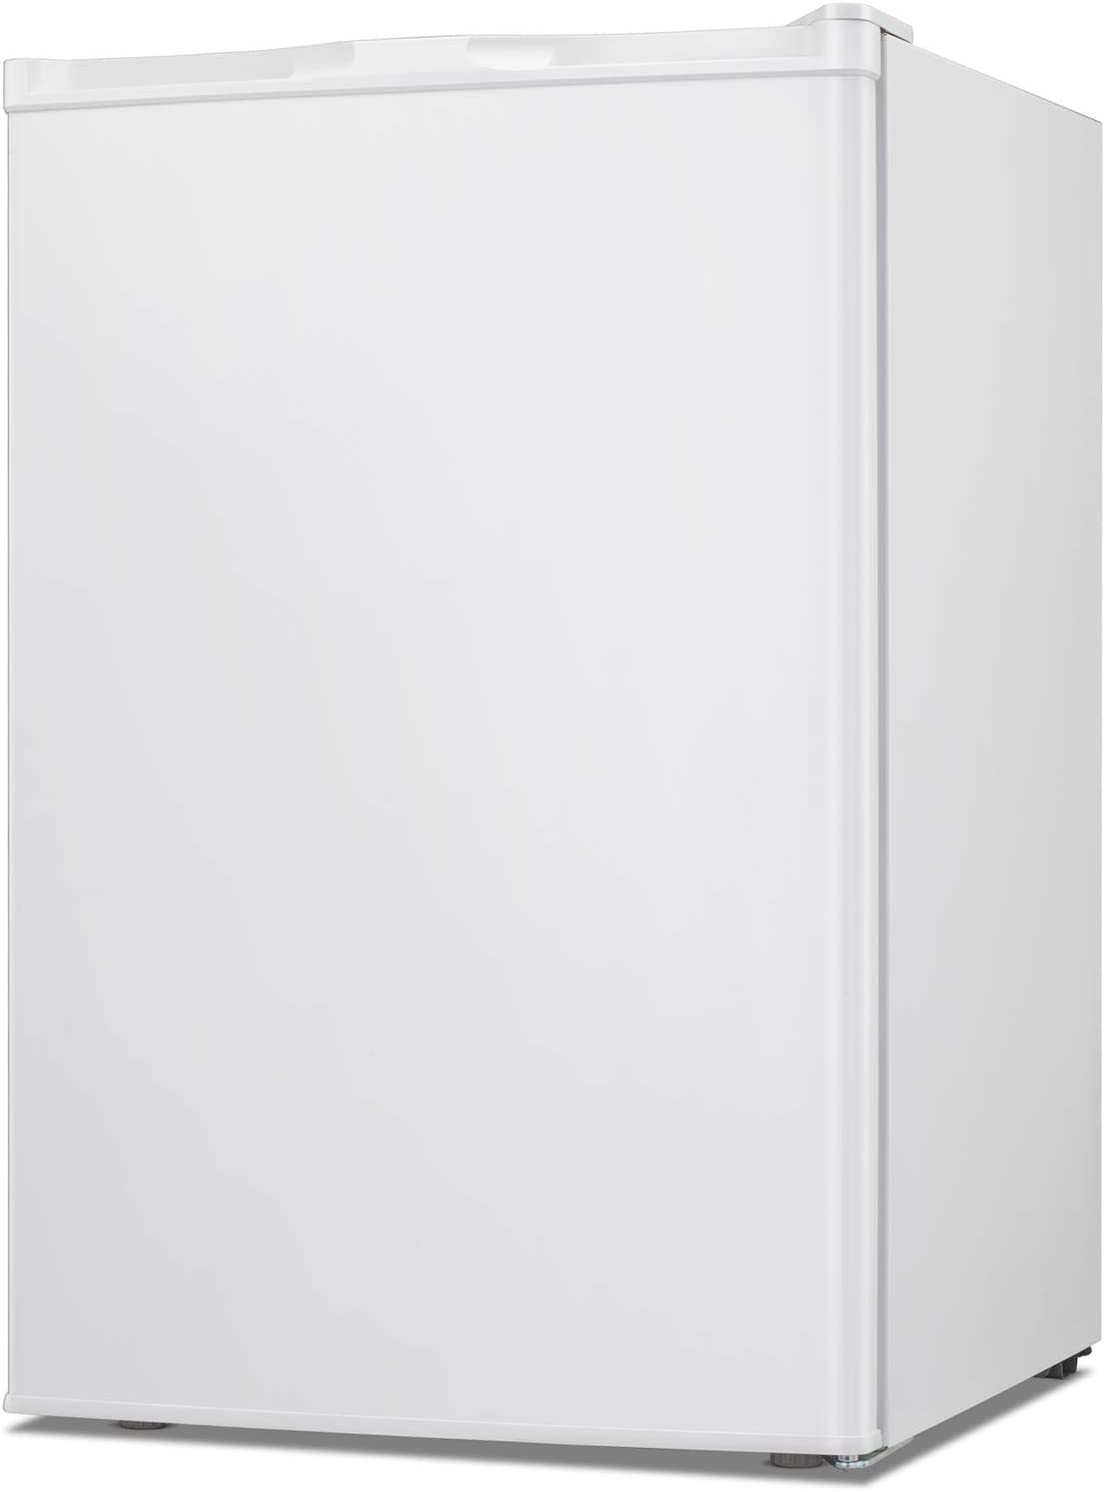 TAVATA Compact Upright Freezer Single Door Reversible Stainless Steel Door, Compact Adjustable Removable Shelves for Home Office (White, 3.0 cu.ft)